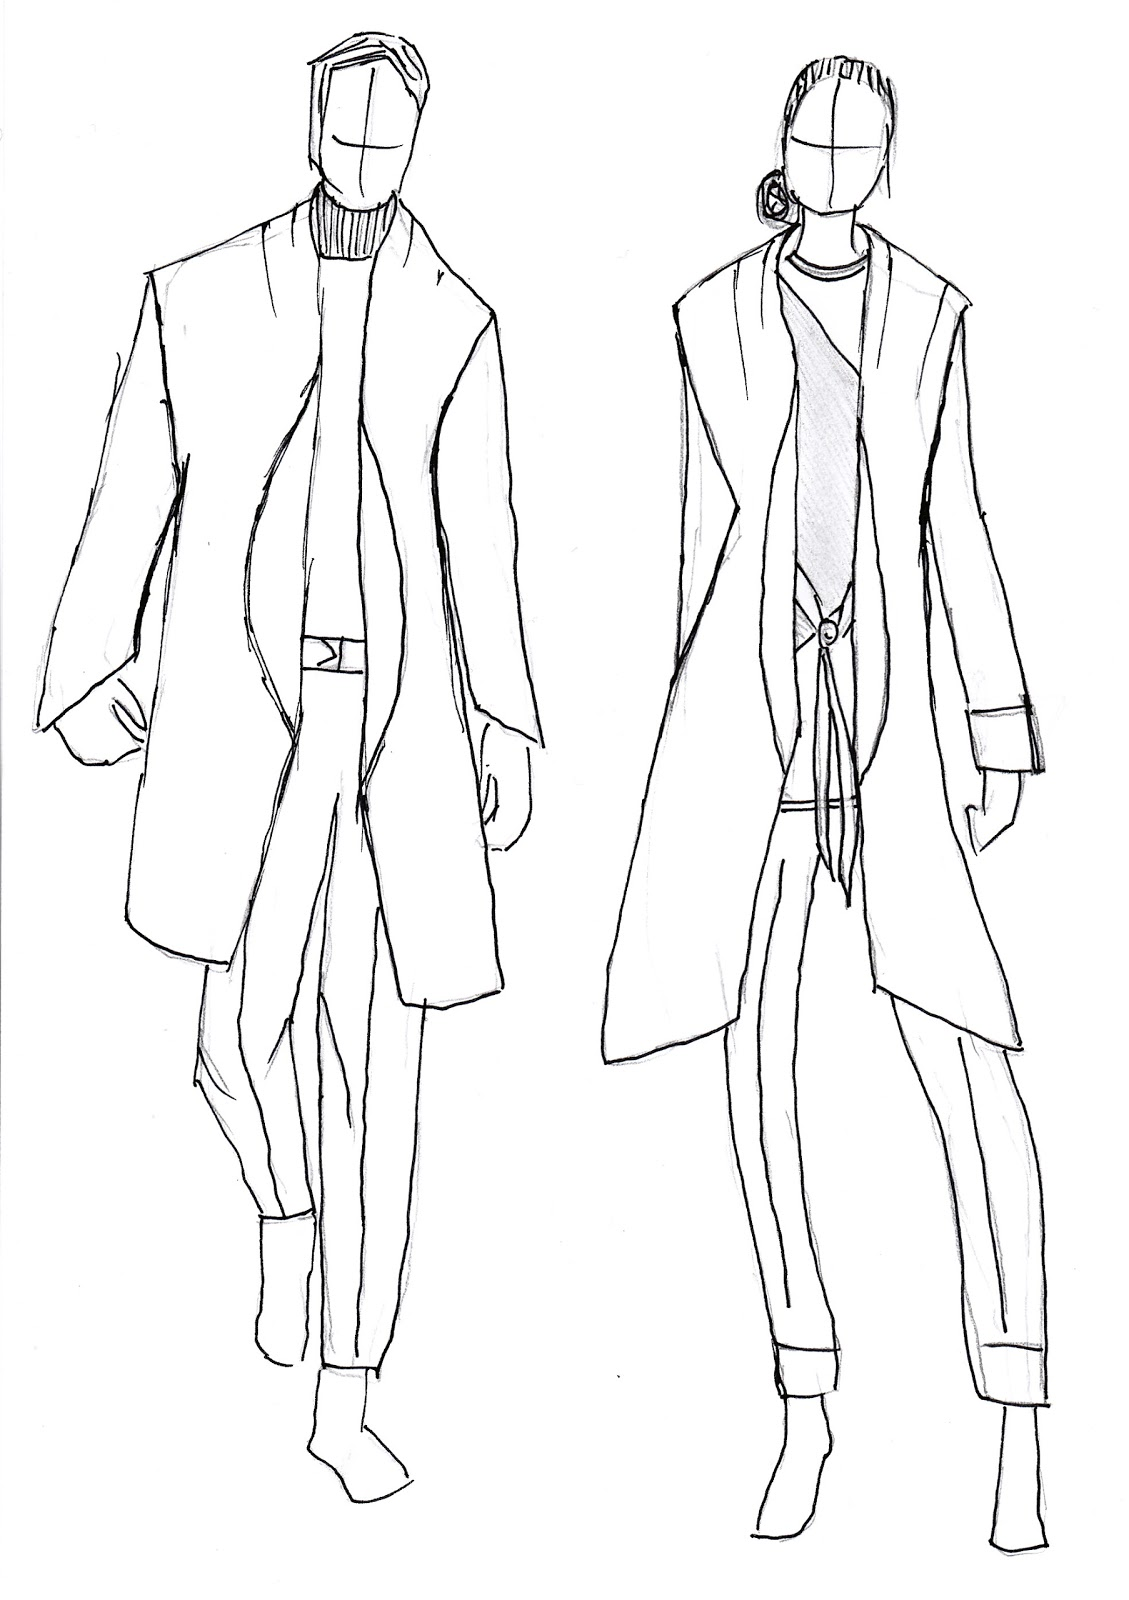 Line Drawing Jacket : Alain putting together outfits line drawings